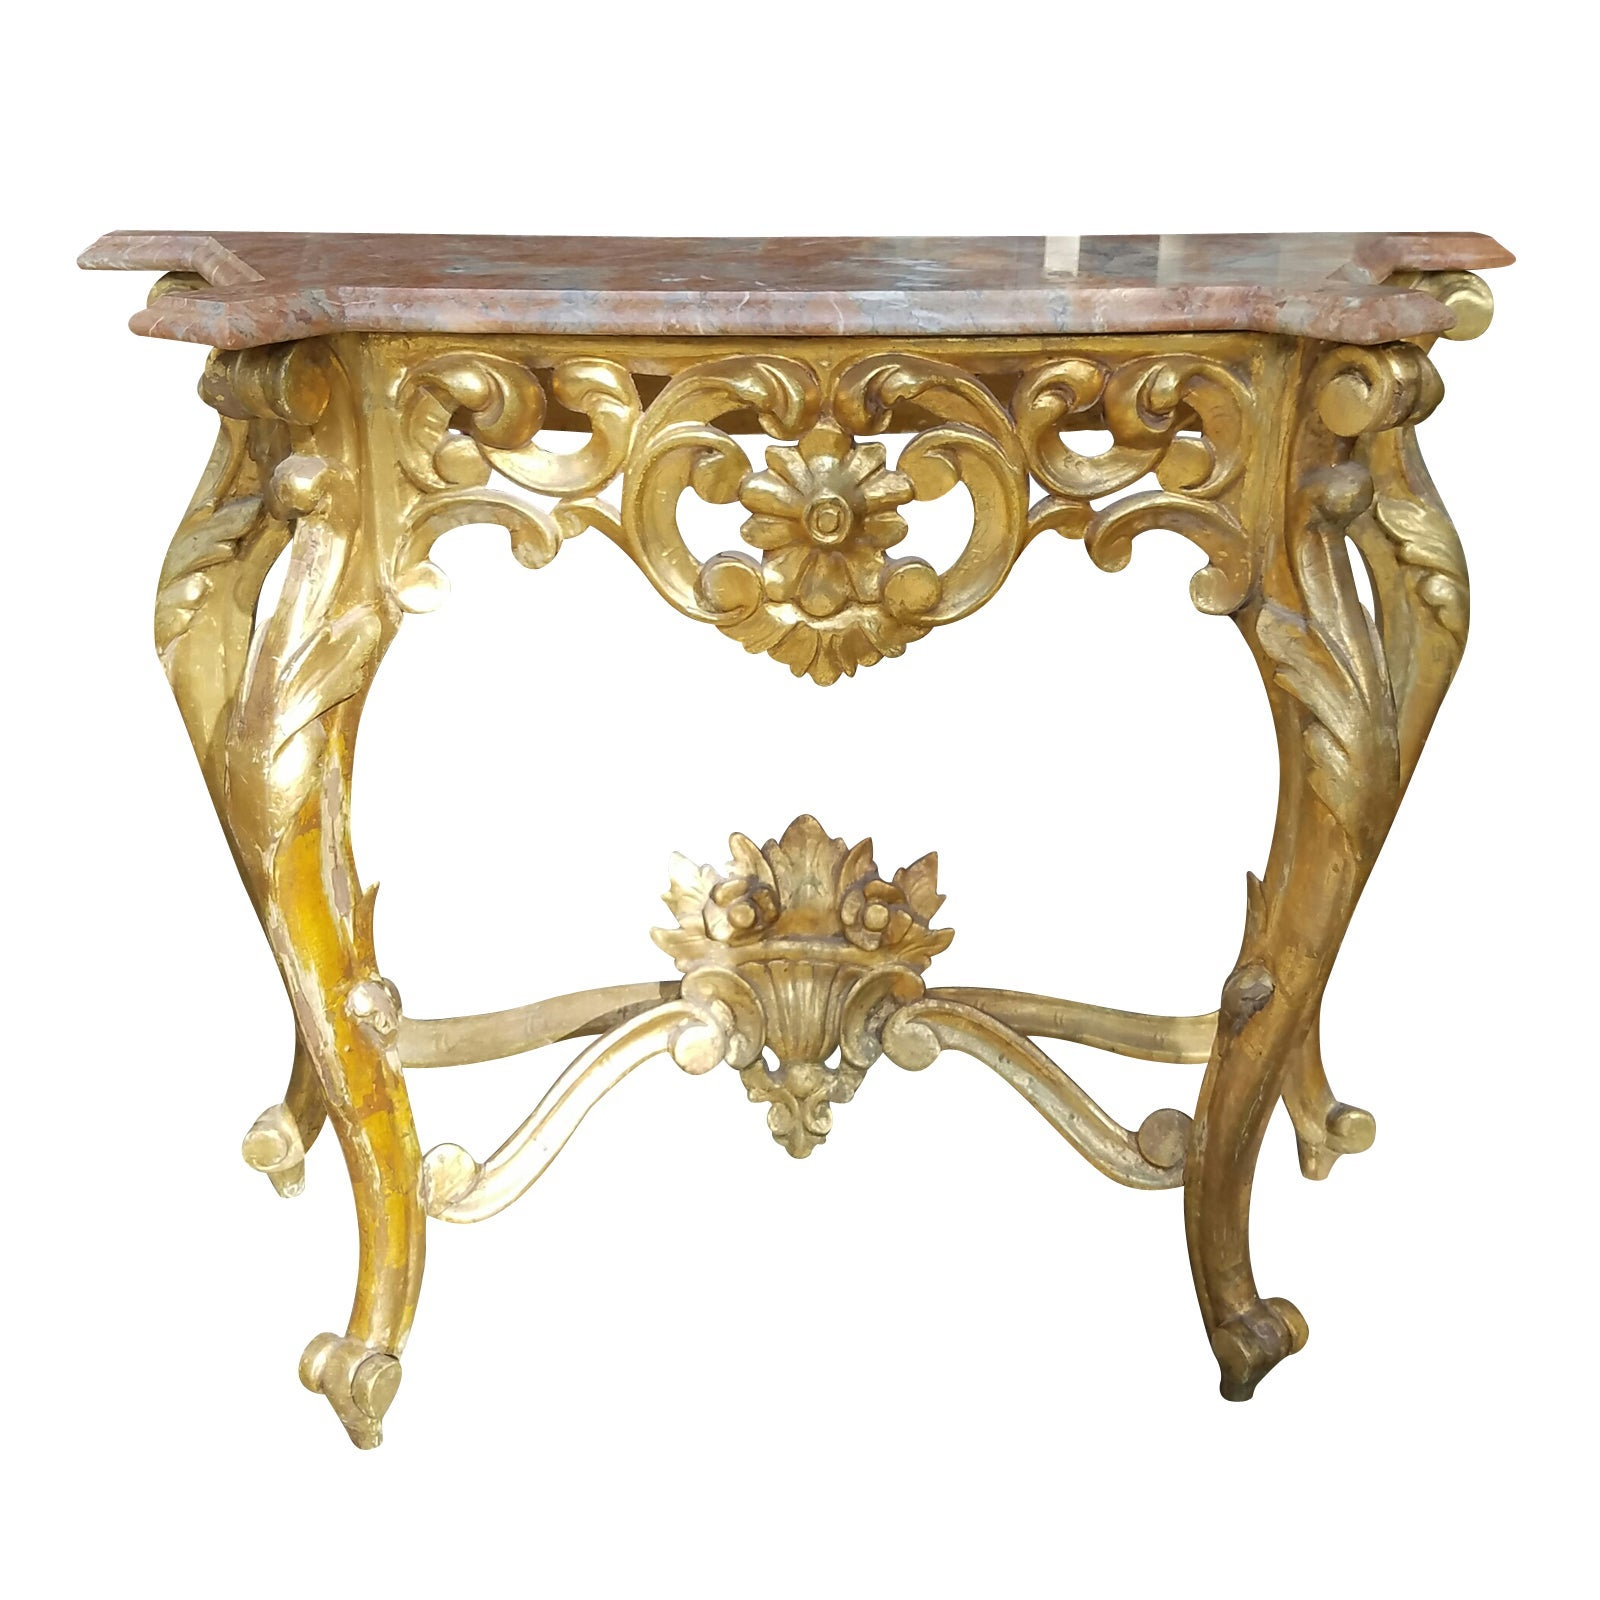 19th-20th Century French Carved Giltwood Console with Marble Top